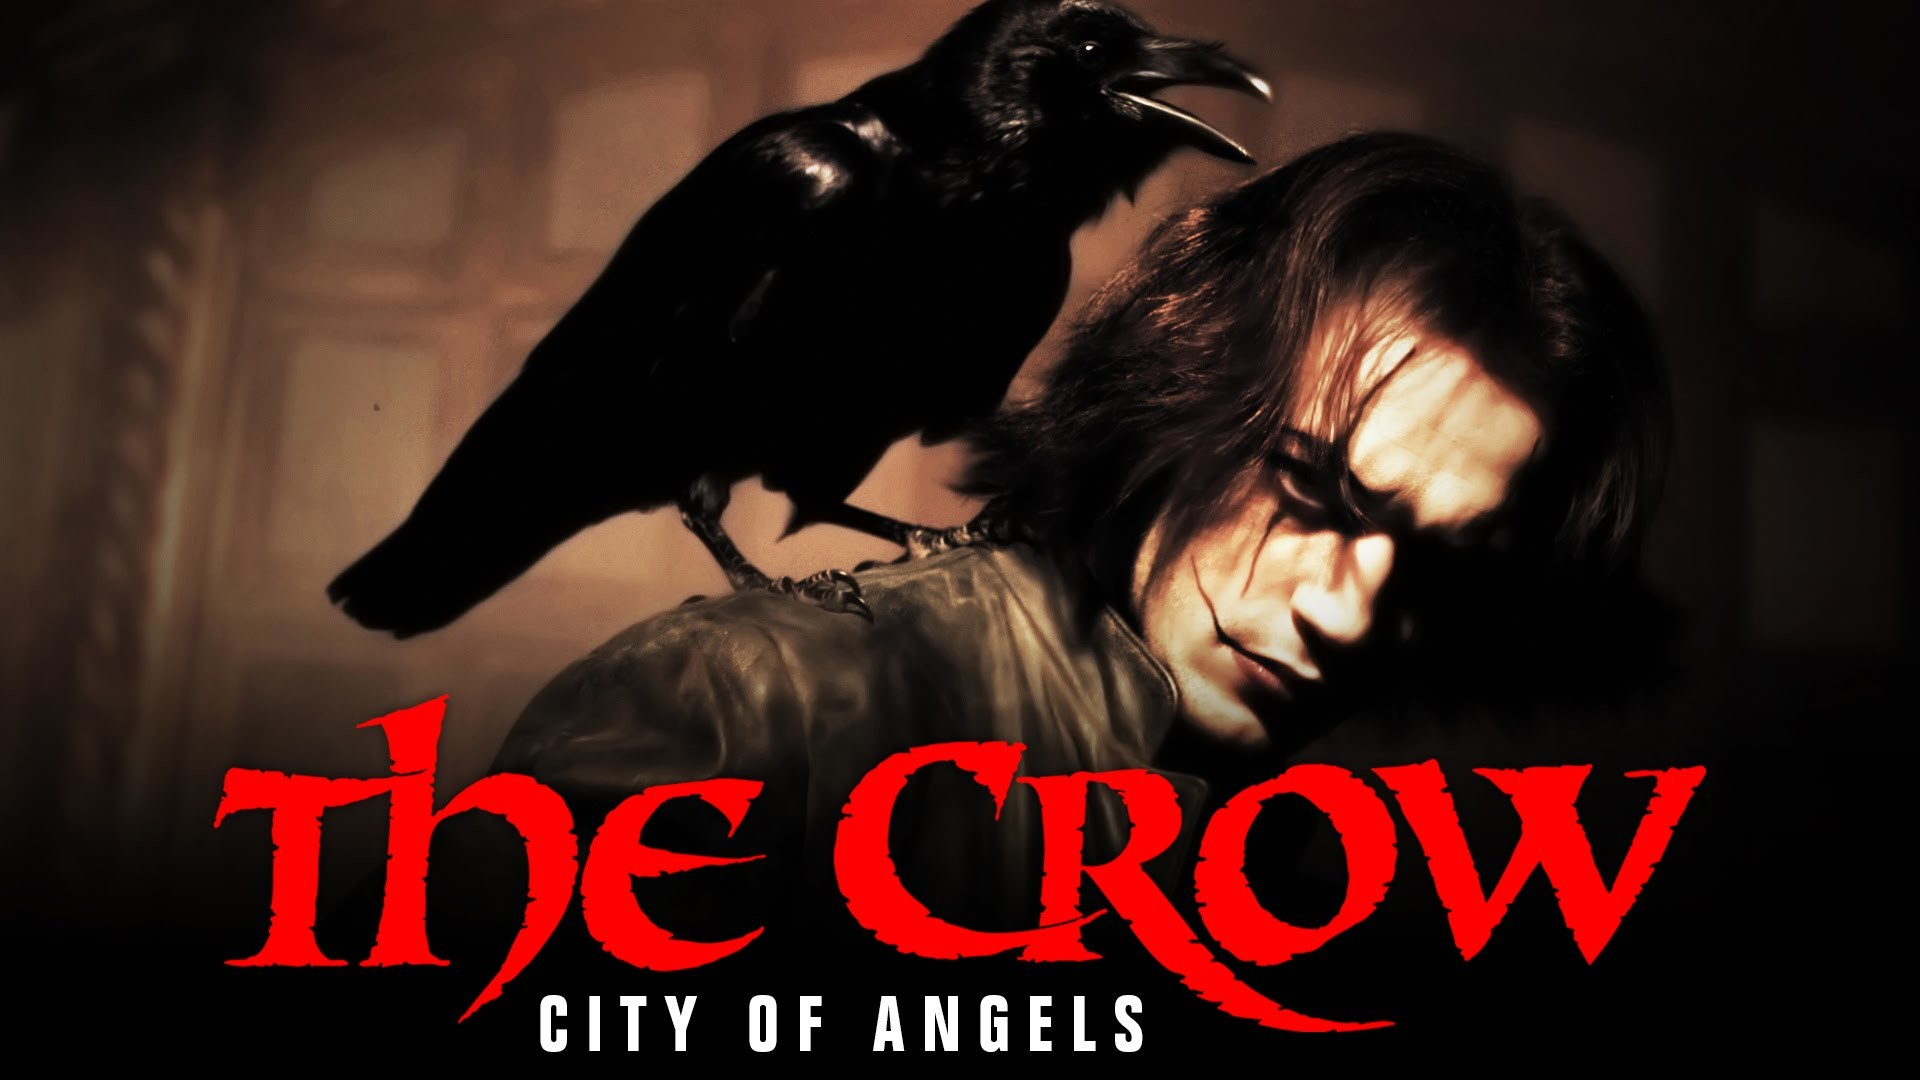 The Crow II: City of Angels   Official Trailer (HD) – Vincent Perez, Mia  Kirshner   MIRAMAX – YouTube